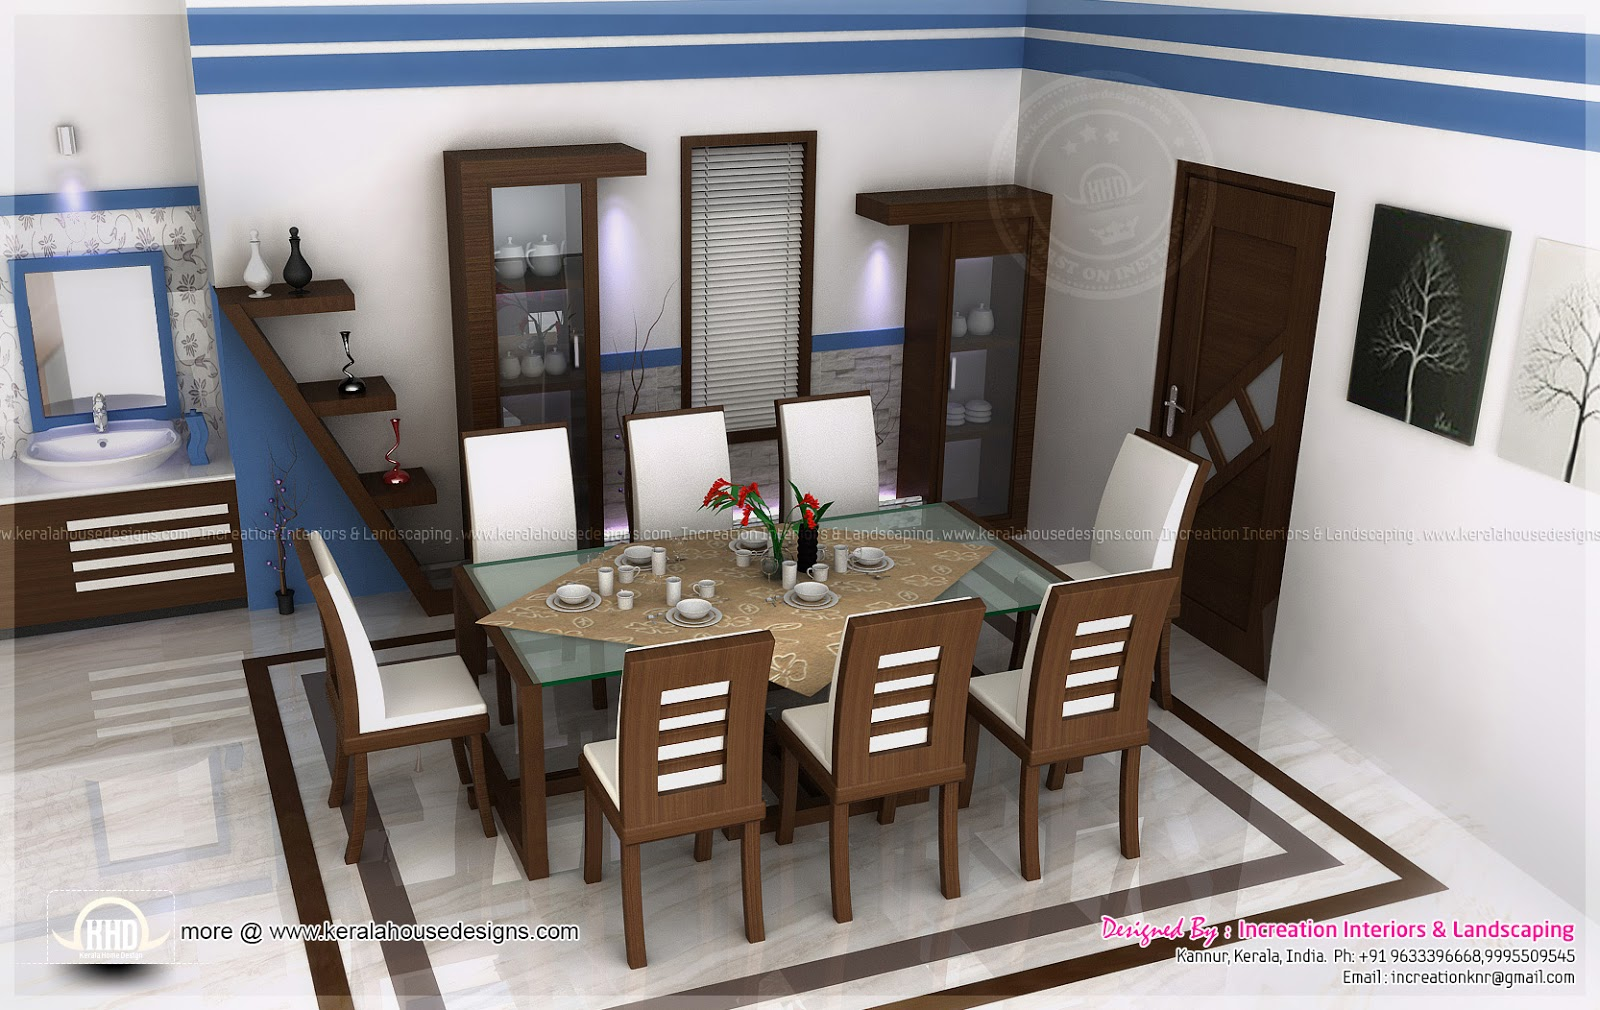 Indian Kitchen Interior Design Photos Middle Class House Interior Ideas In 3d Rendering Kerala Home Design